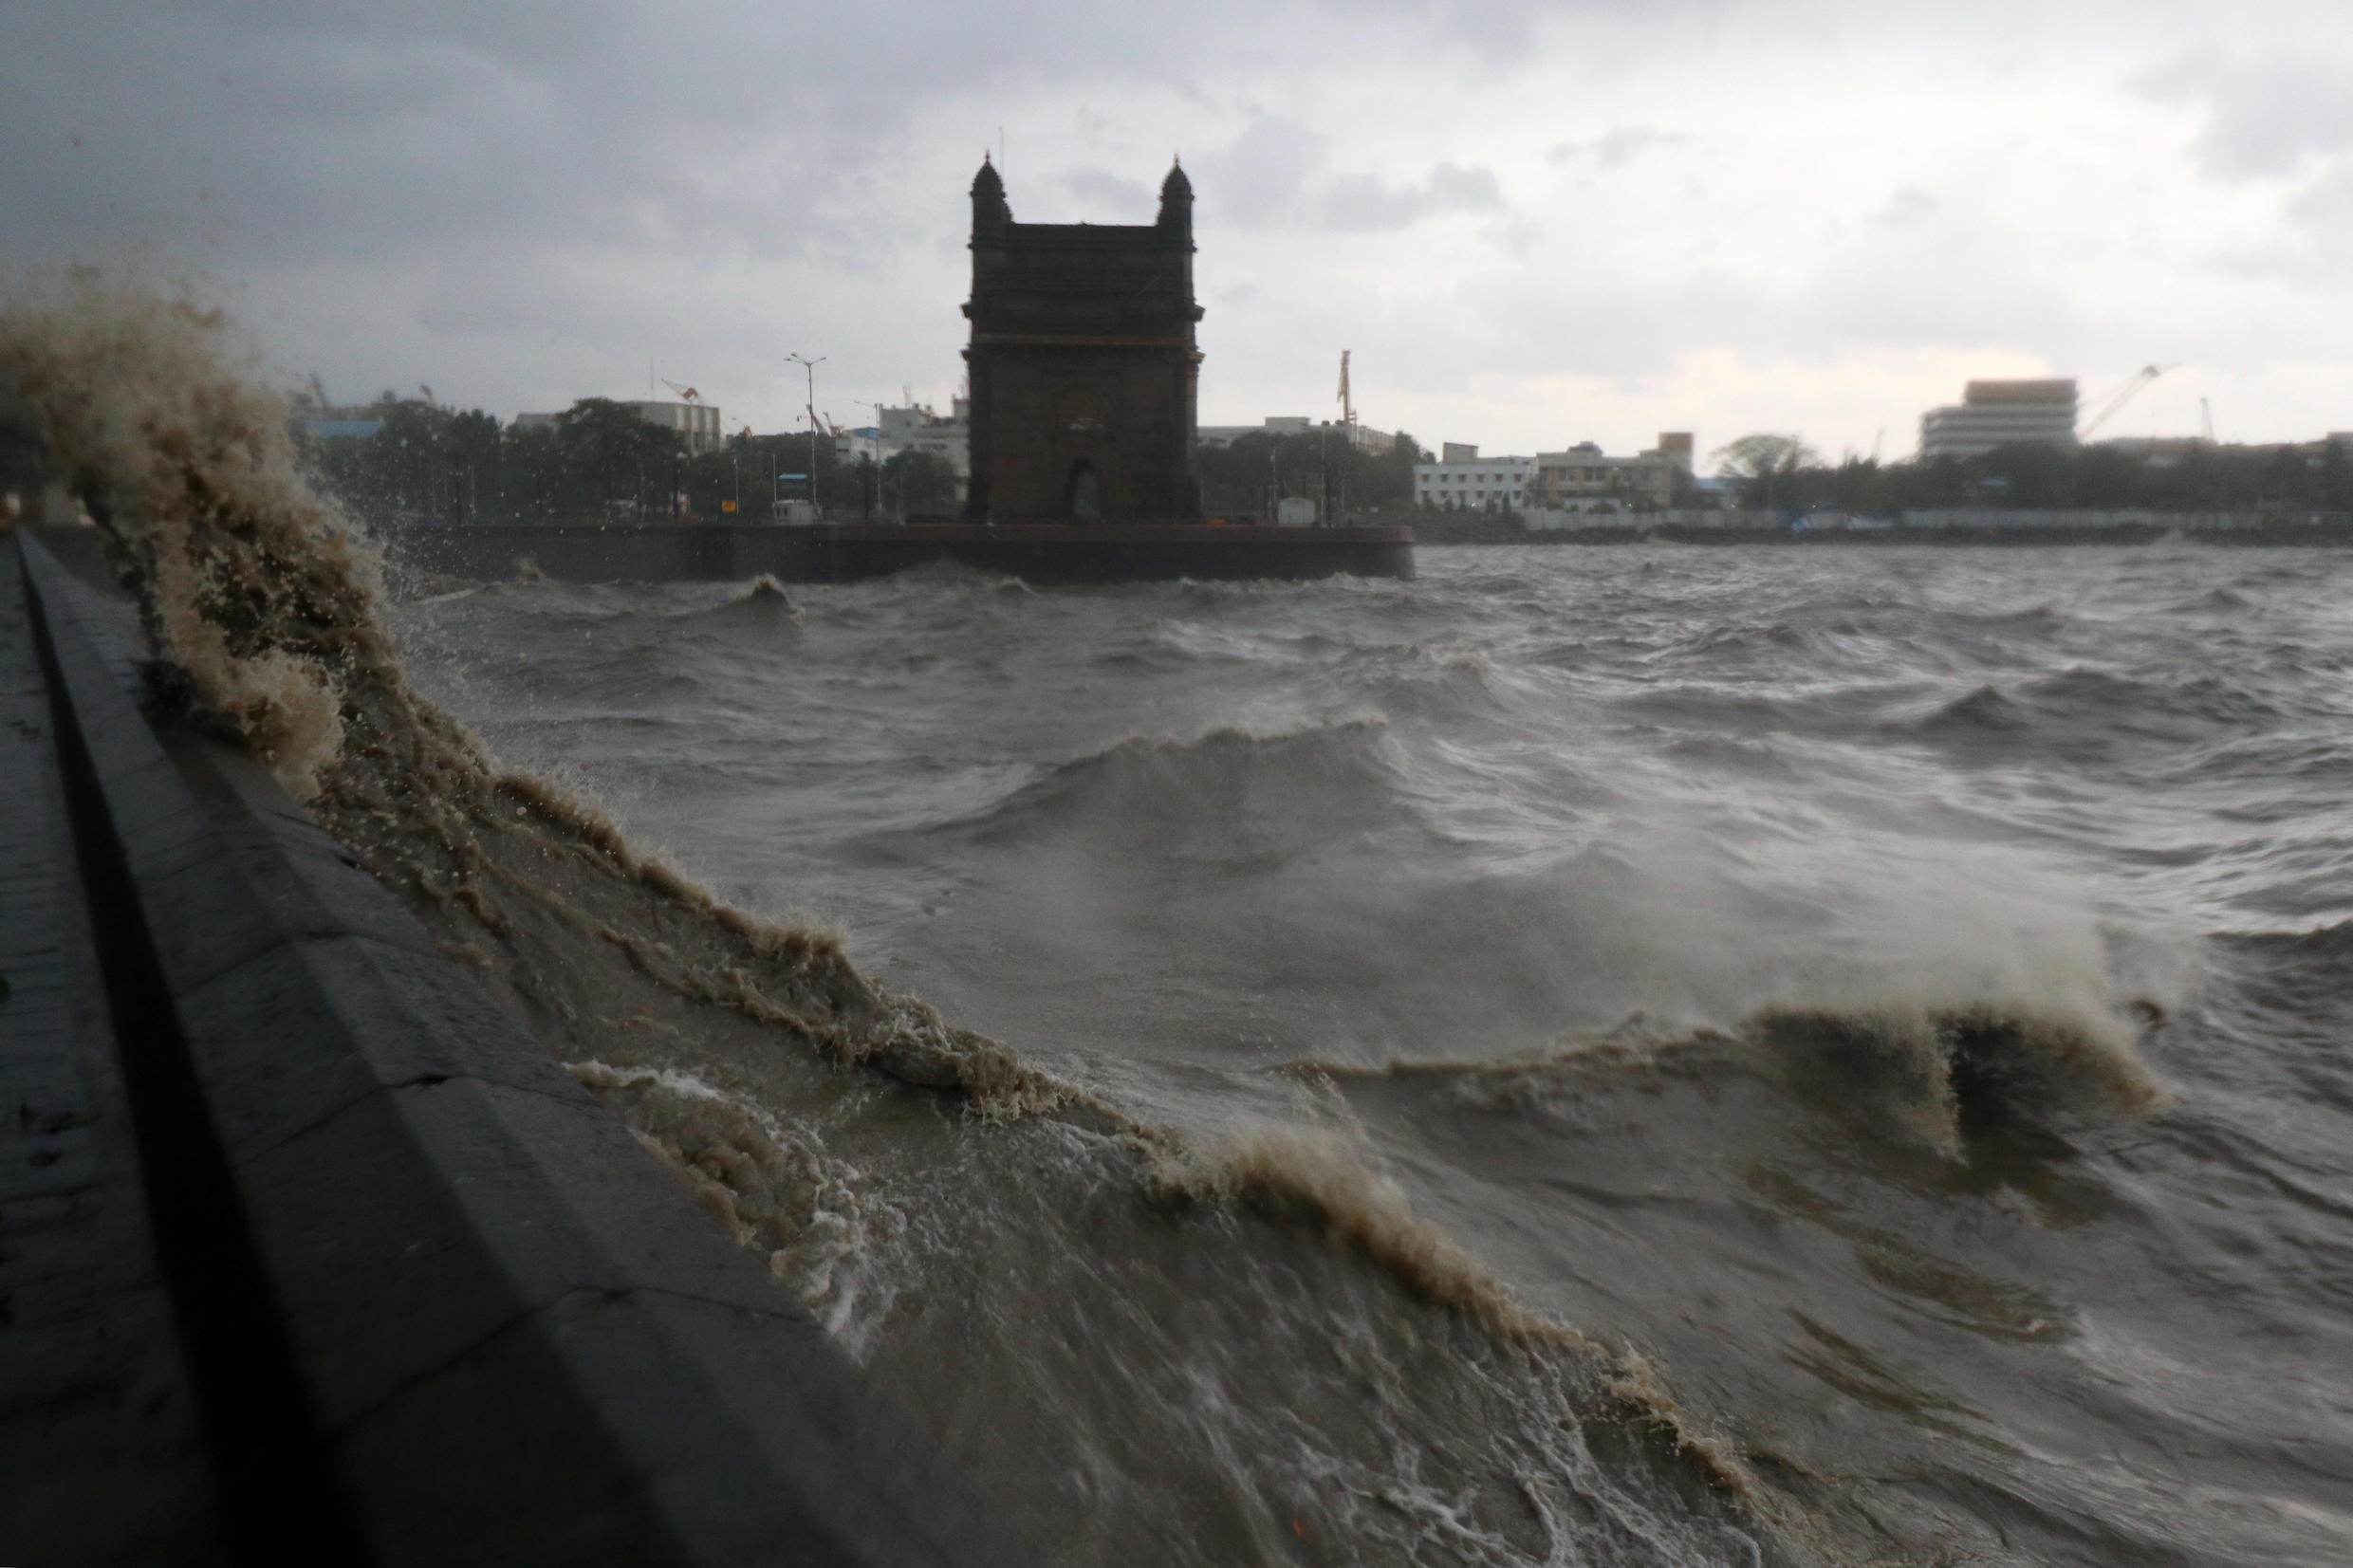 Waves caused by Cyclone Tauktae crash up on the promenade near the Gateway of India monument in Mumbai, India, May 17, 2021.